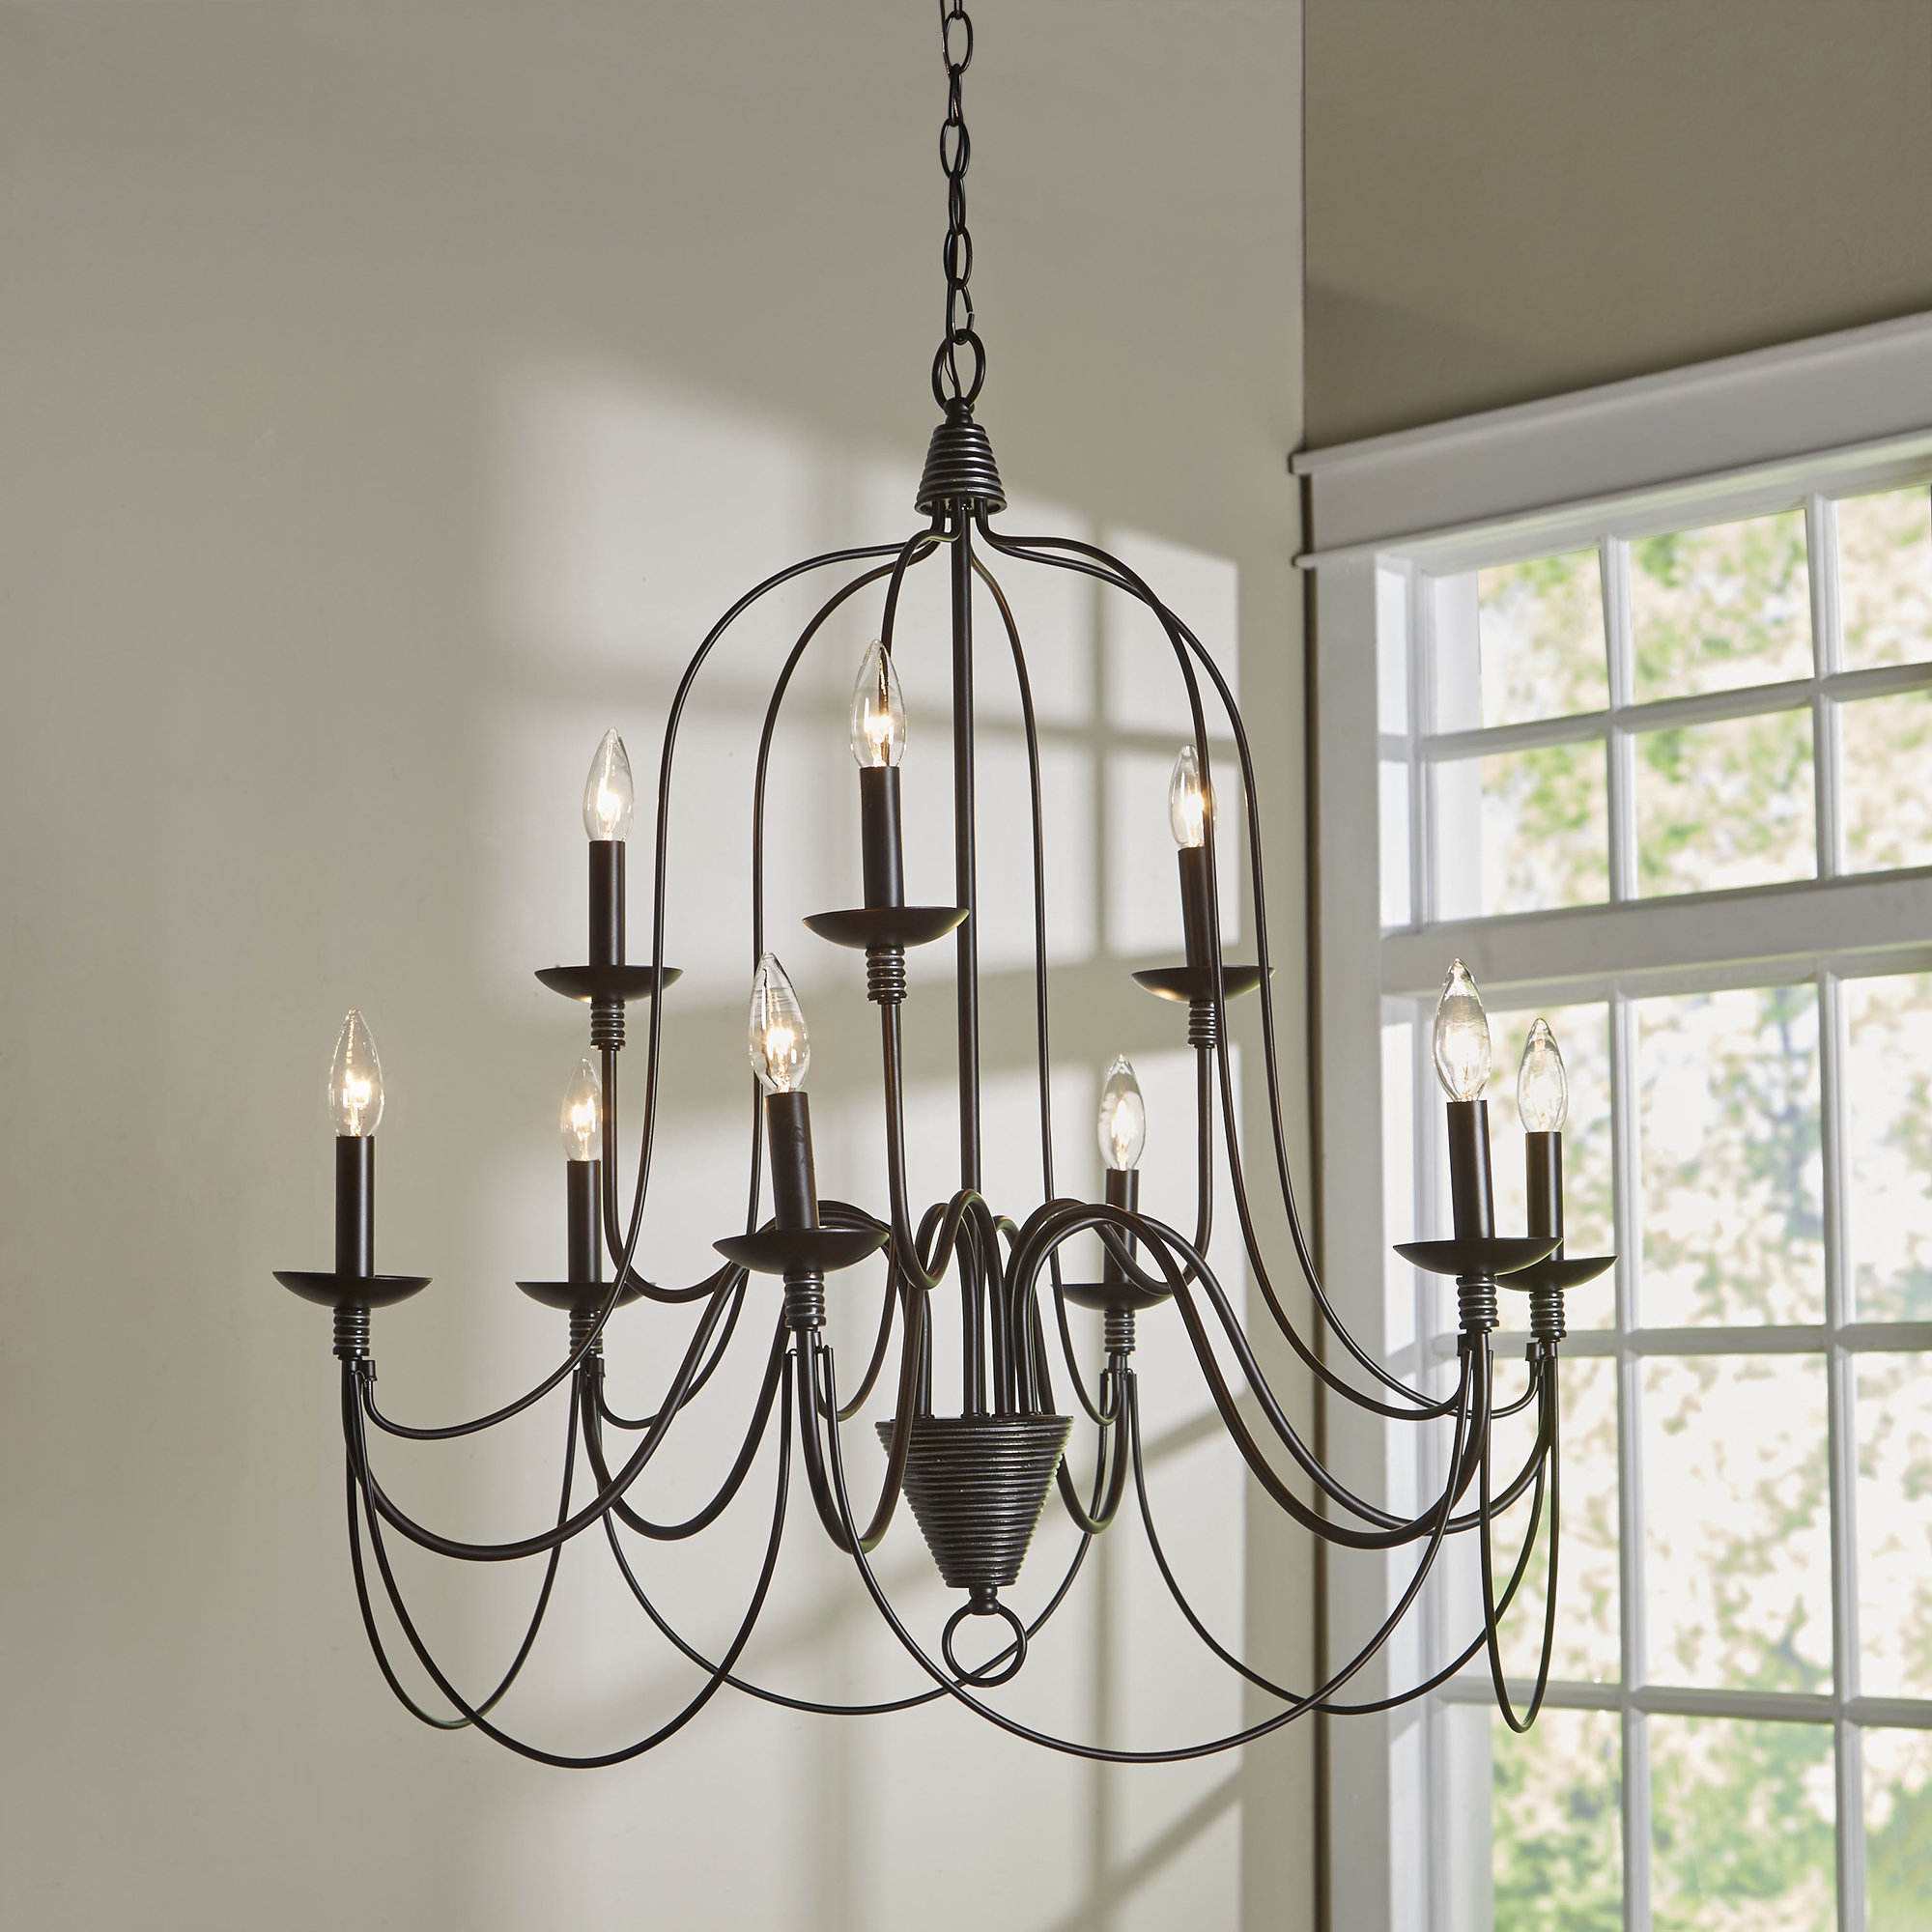 Most Popular Giverny 9 Light Candle Style Chandeliers Throughout Watford 9 Light Candle Style Chandelier (View 2 of 25)